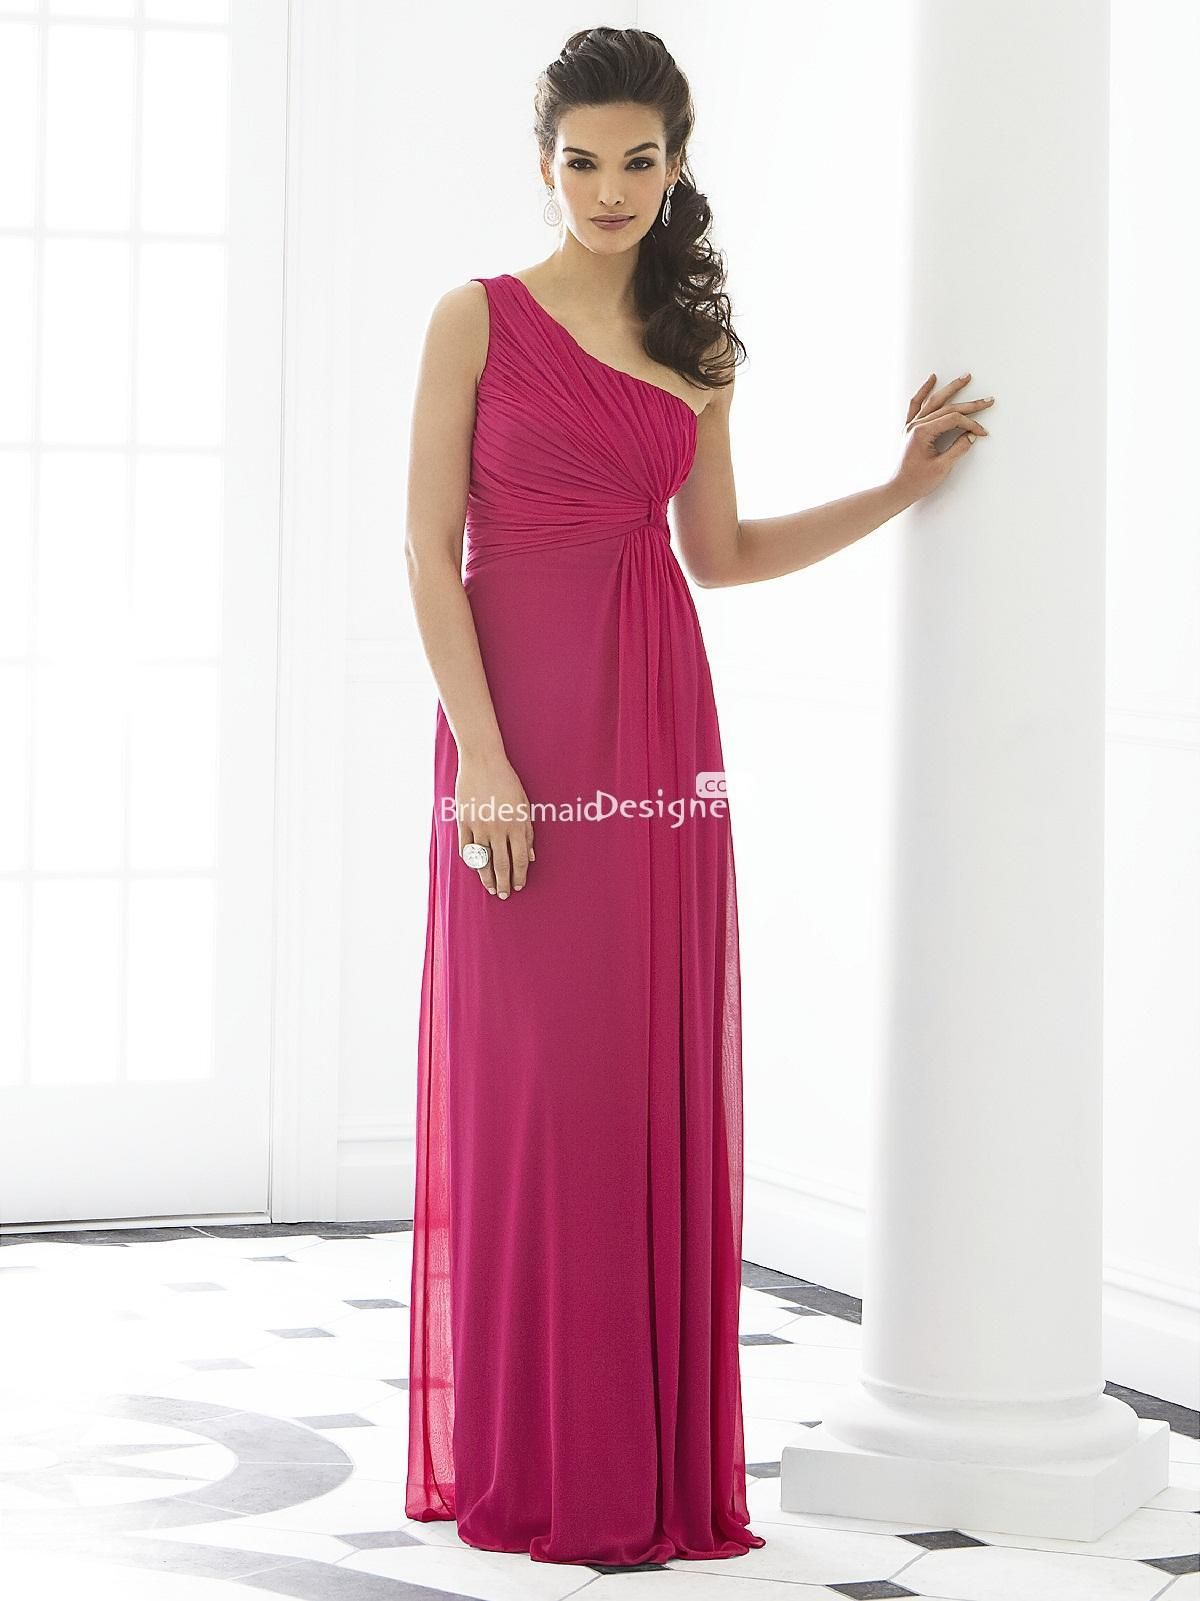 Chic fuschia one shoulder floor length empire sleeveless draped chic fuschia one shoulder floor length empire sleeveless draped chiffon bridesmaid dress us 36300 off ombrellifo Choice Image